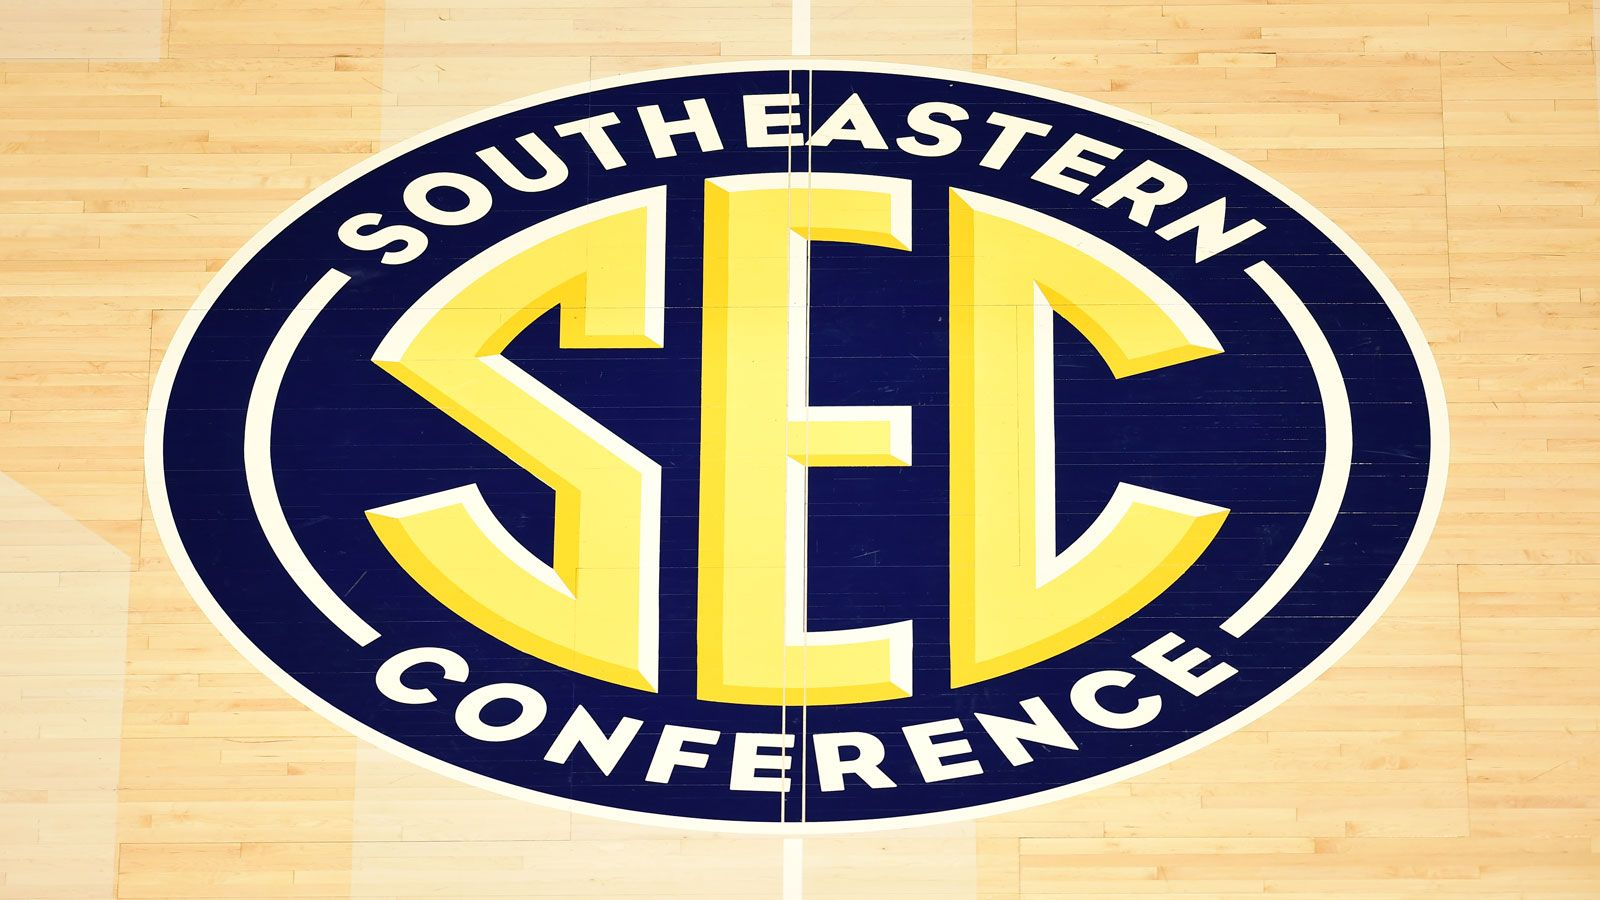 SEC Men's Basketball Central